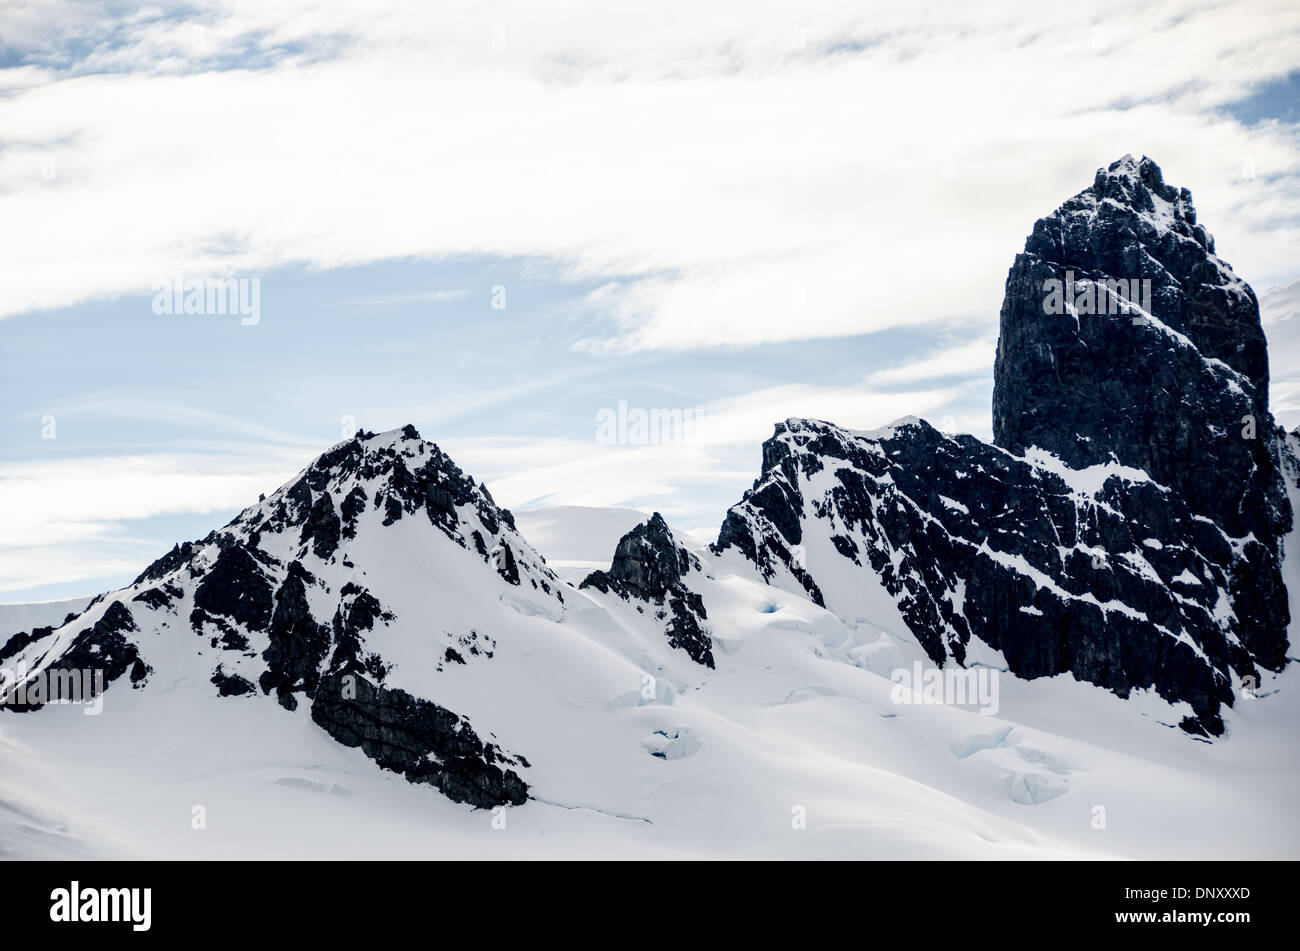 ANTARCTICA - Rugged rocky mountains covered in snow and ice rise up from the Antarctica Peninsula near Cuverville Stock Photo